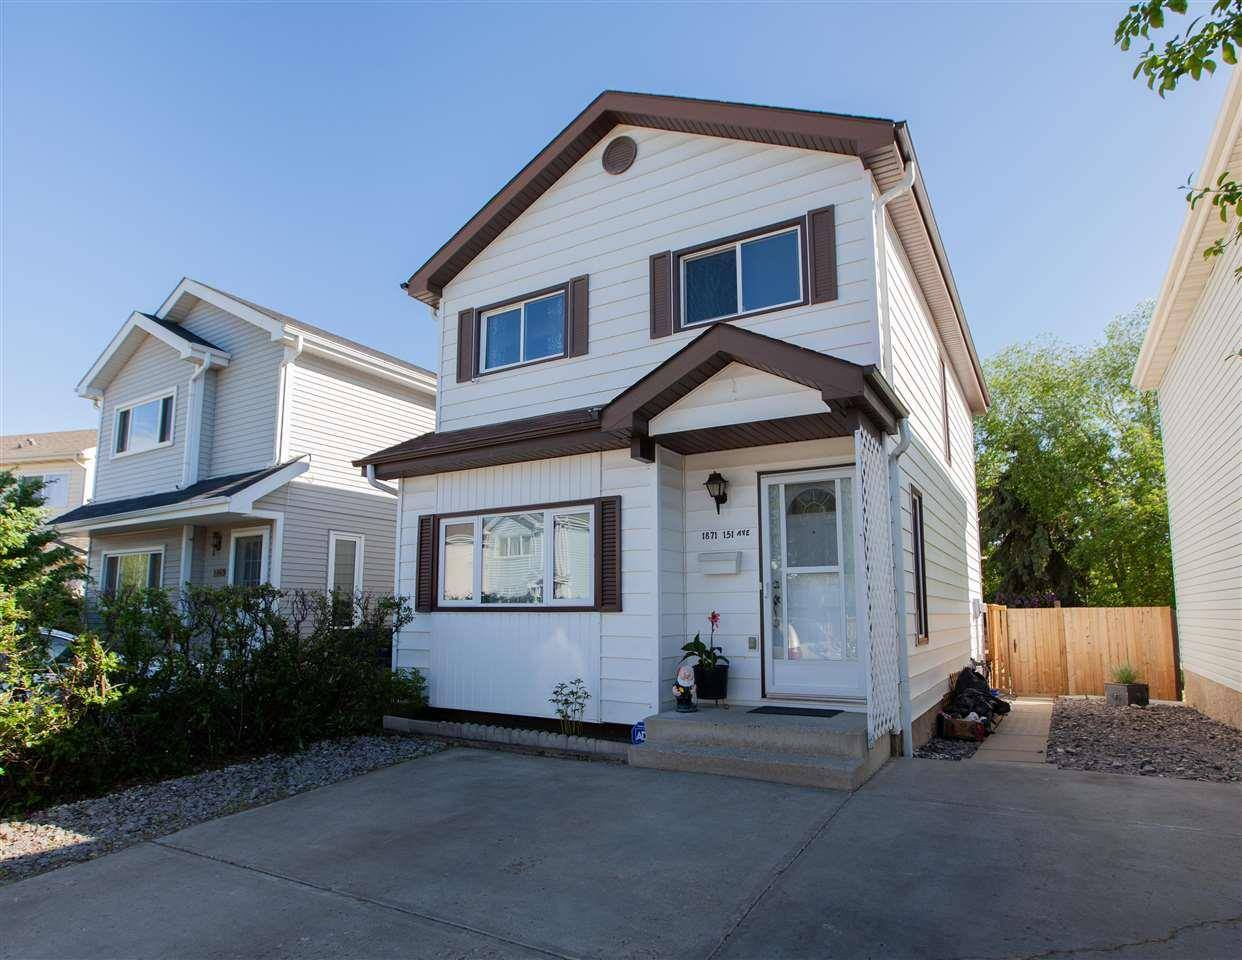 House for sale at 1871 151 Ave Nw Edmonton Alberta - MLS: E4160477